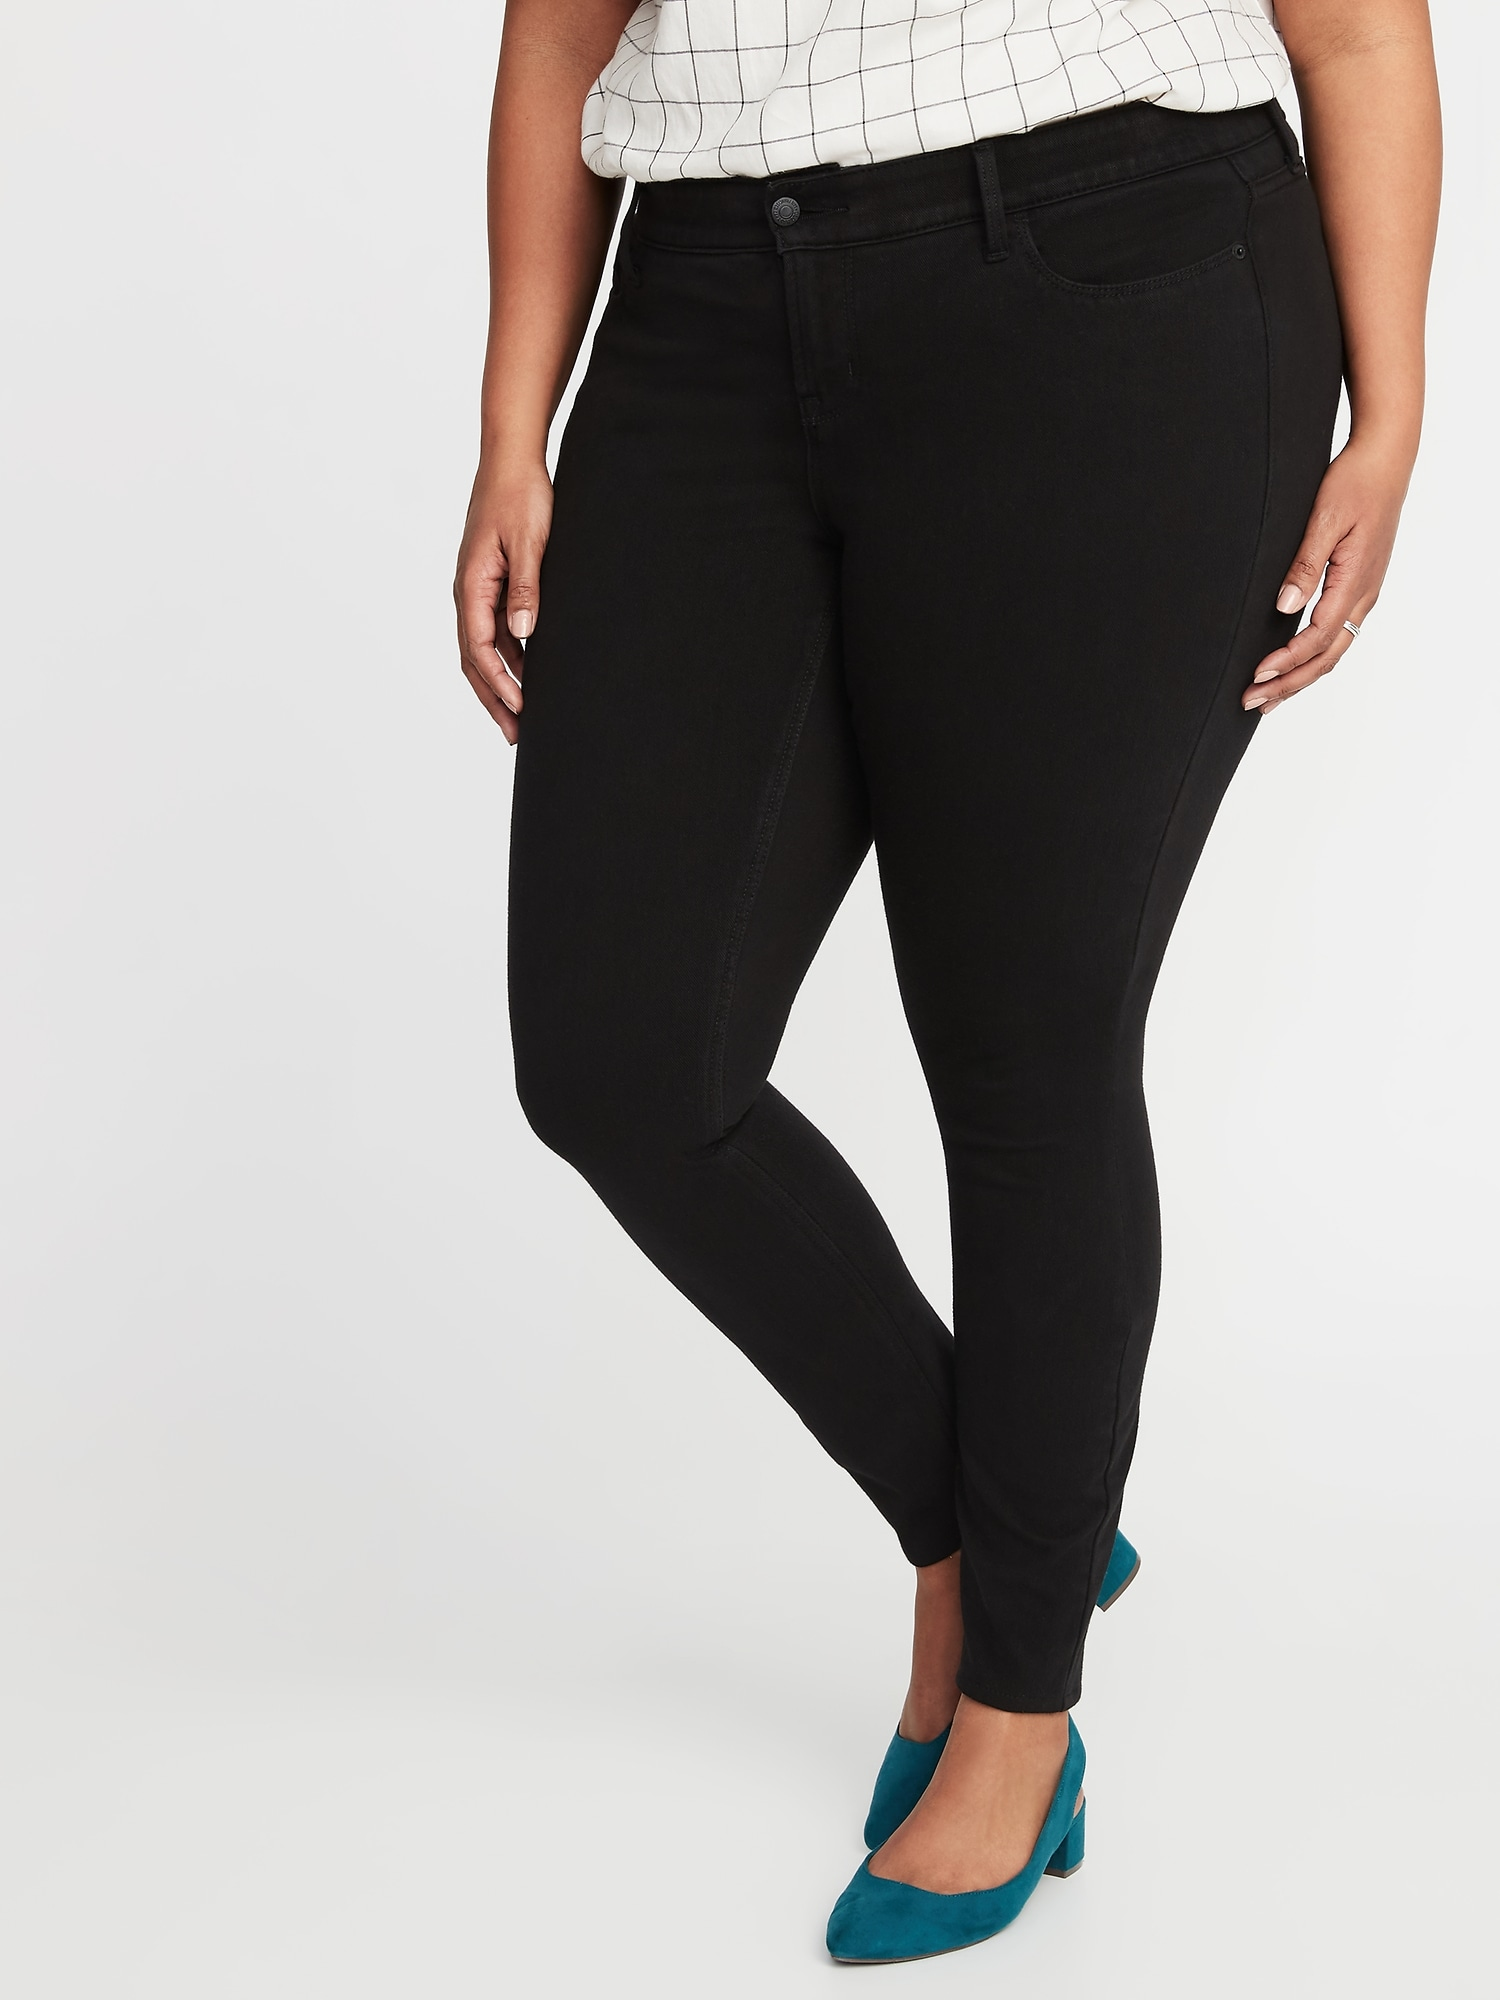 1232edfd19d5db High-Rise Plus-Size Secret-Slim Pockets + Waistband 24/7 Sculpt Rockstar  Jeans